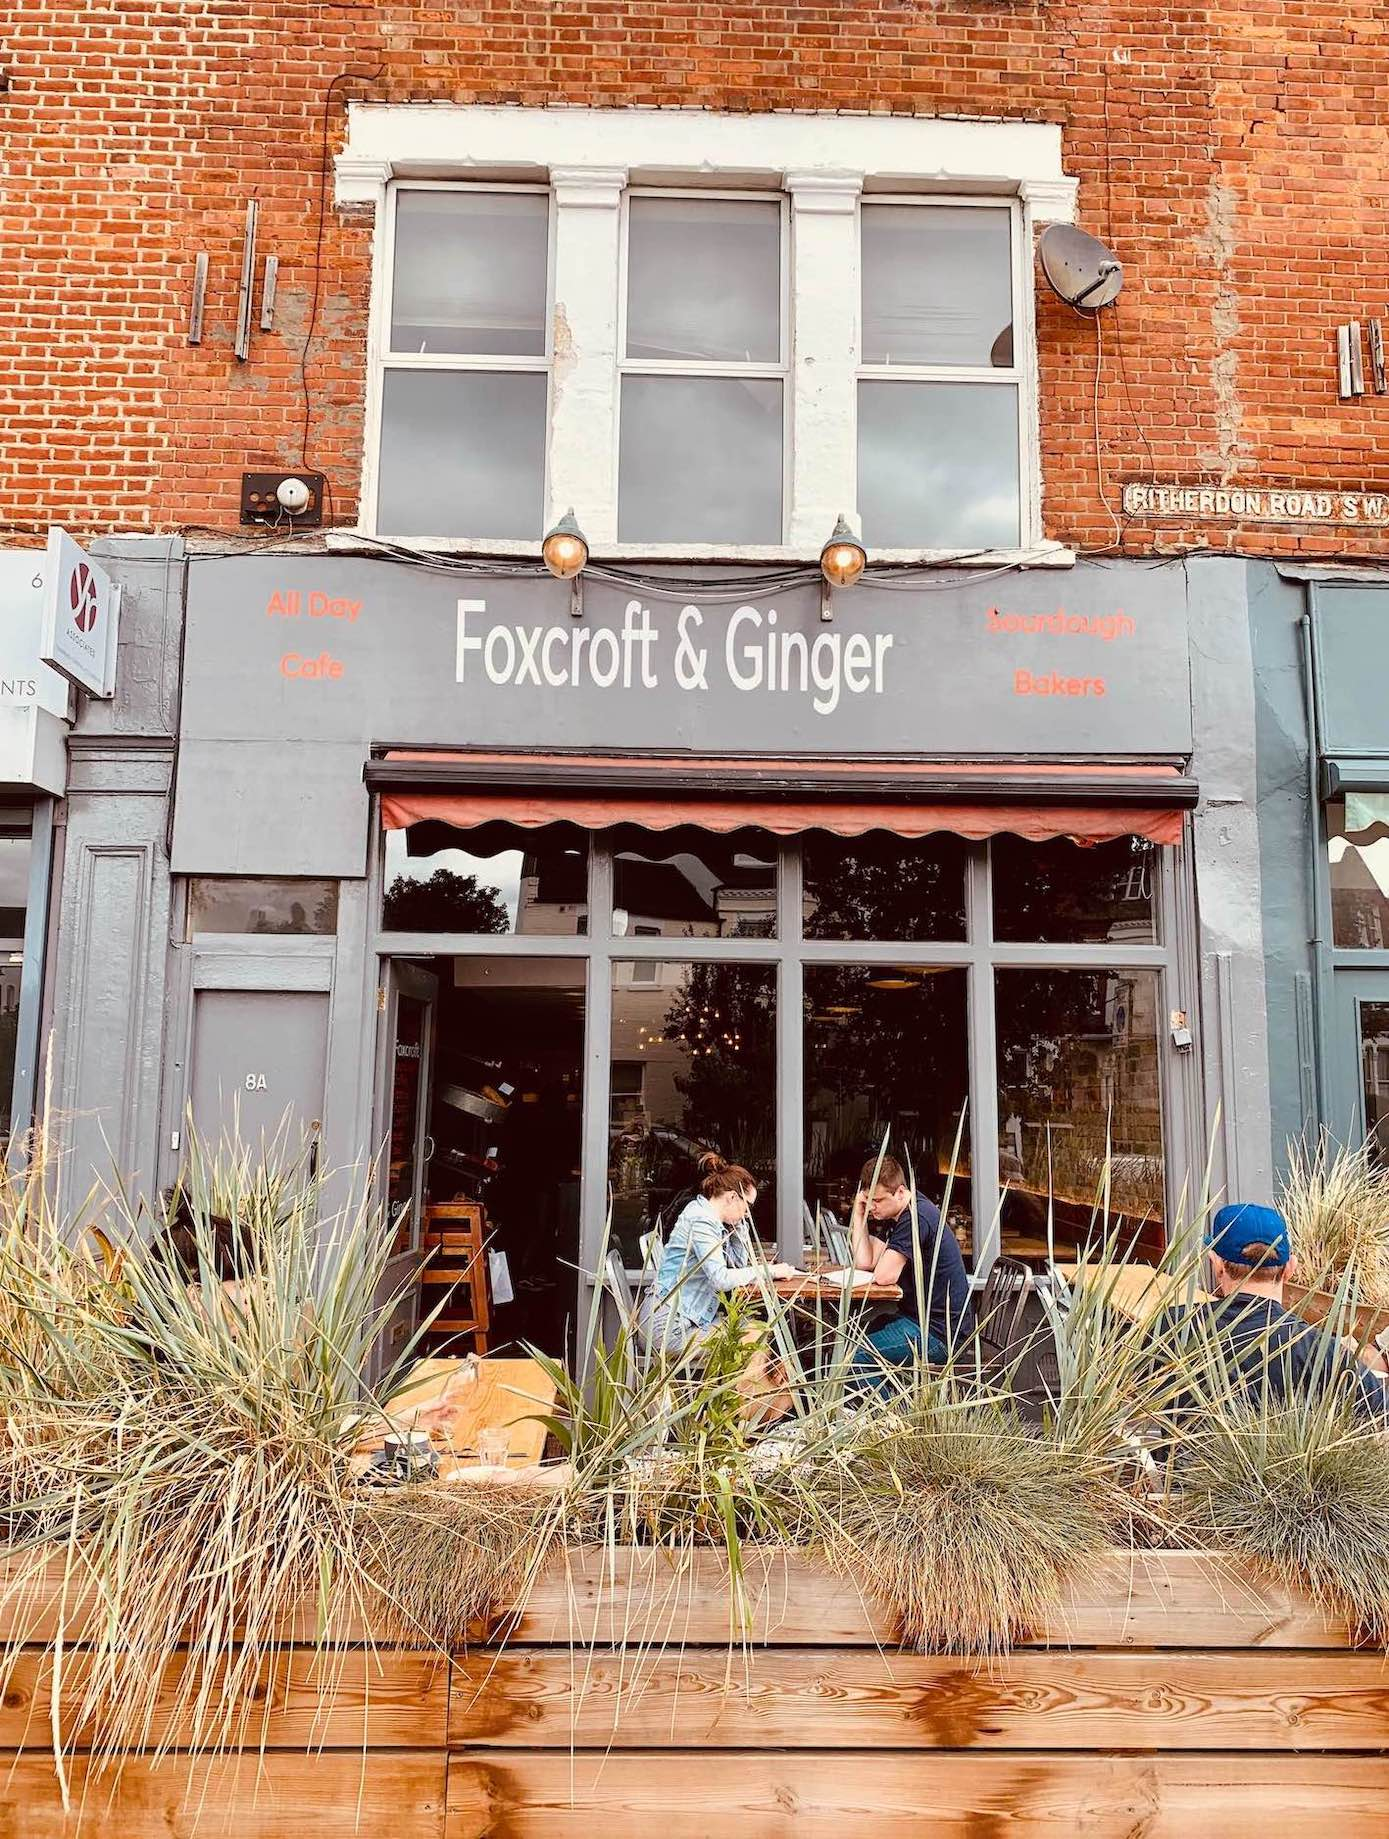 Foxcroft and Ginger Cool Spots Around Tooting Bec